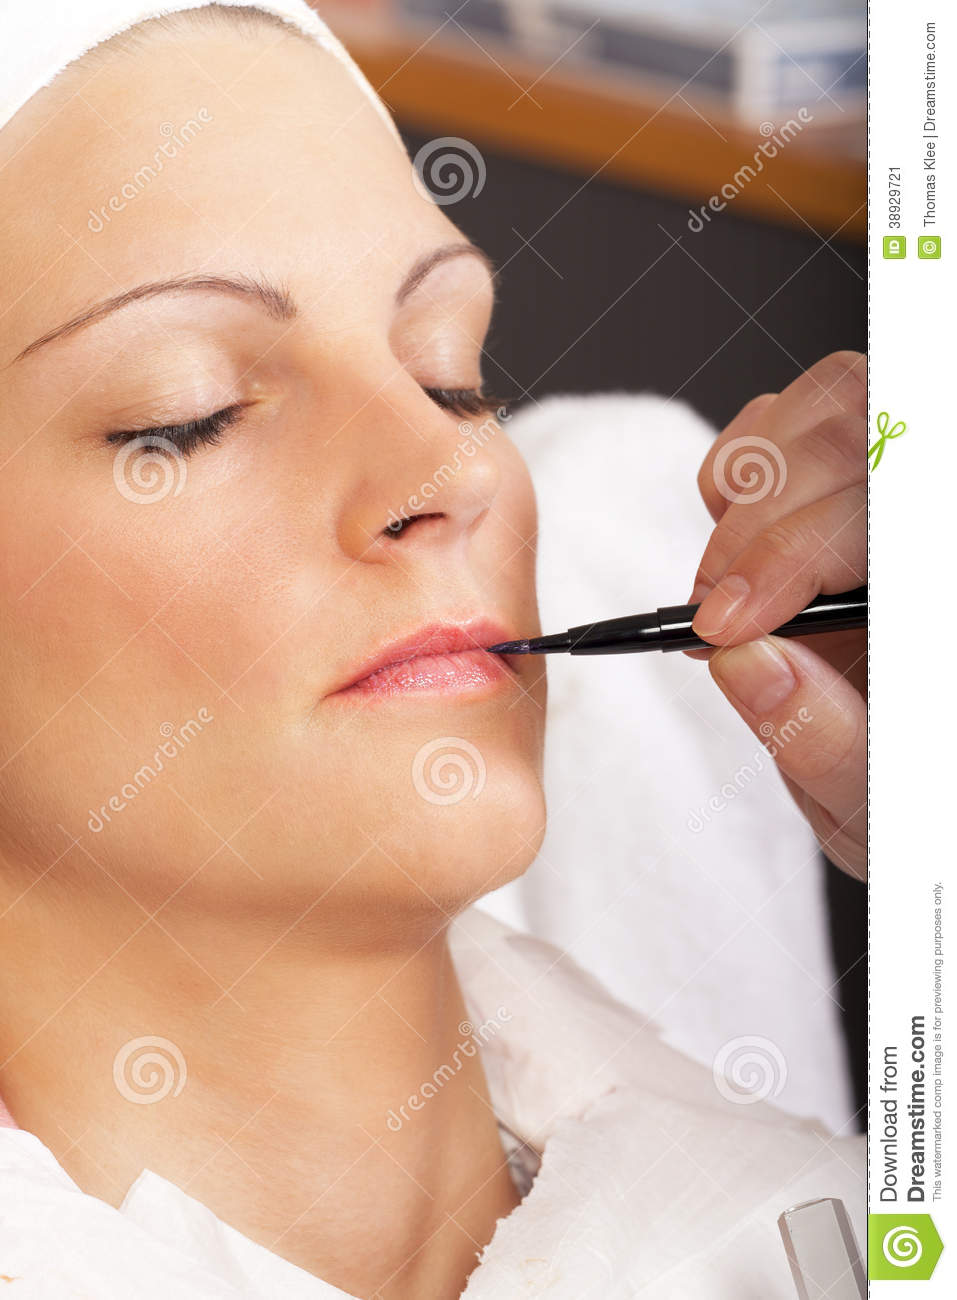 Real Beauty And Cosmetics Treatment - Series Stock Image